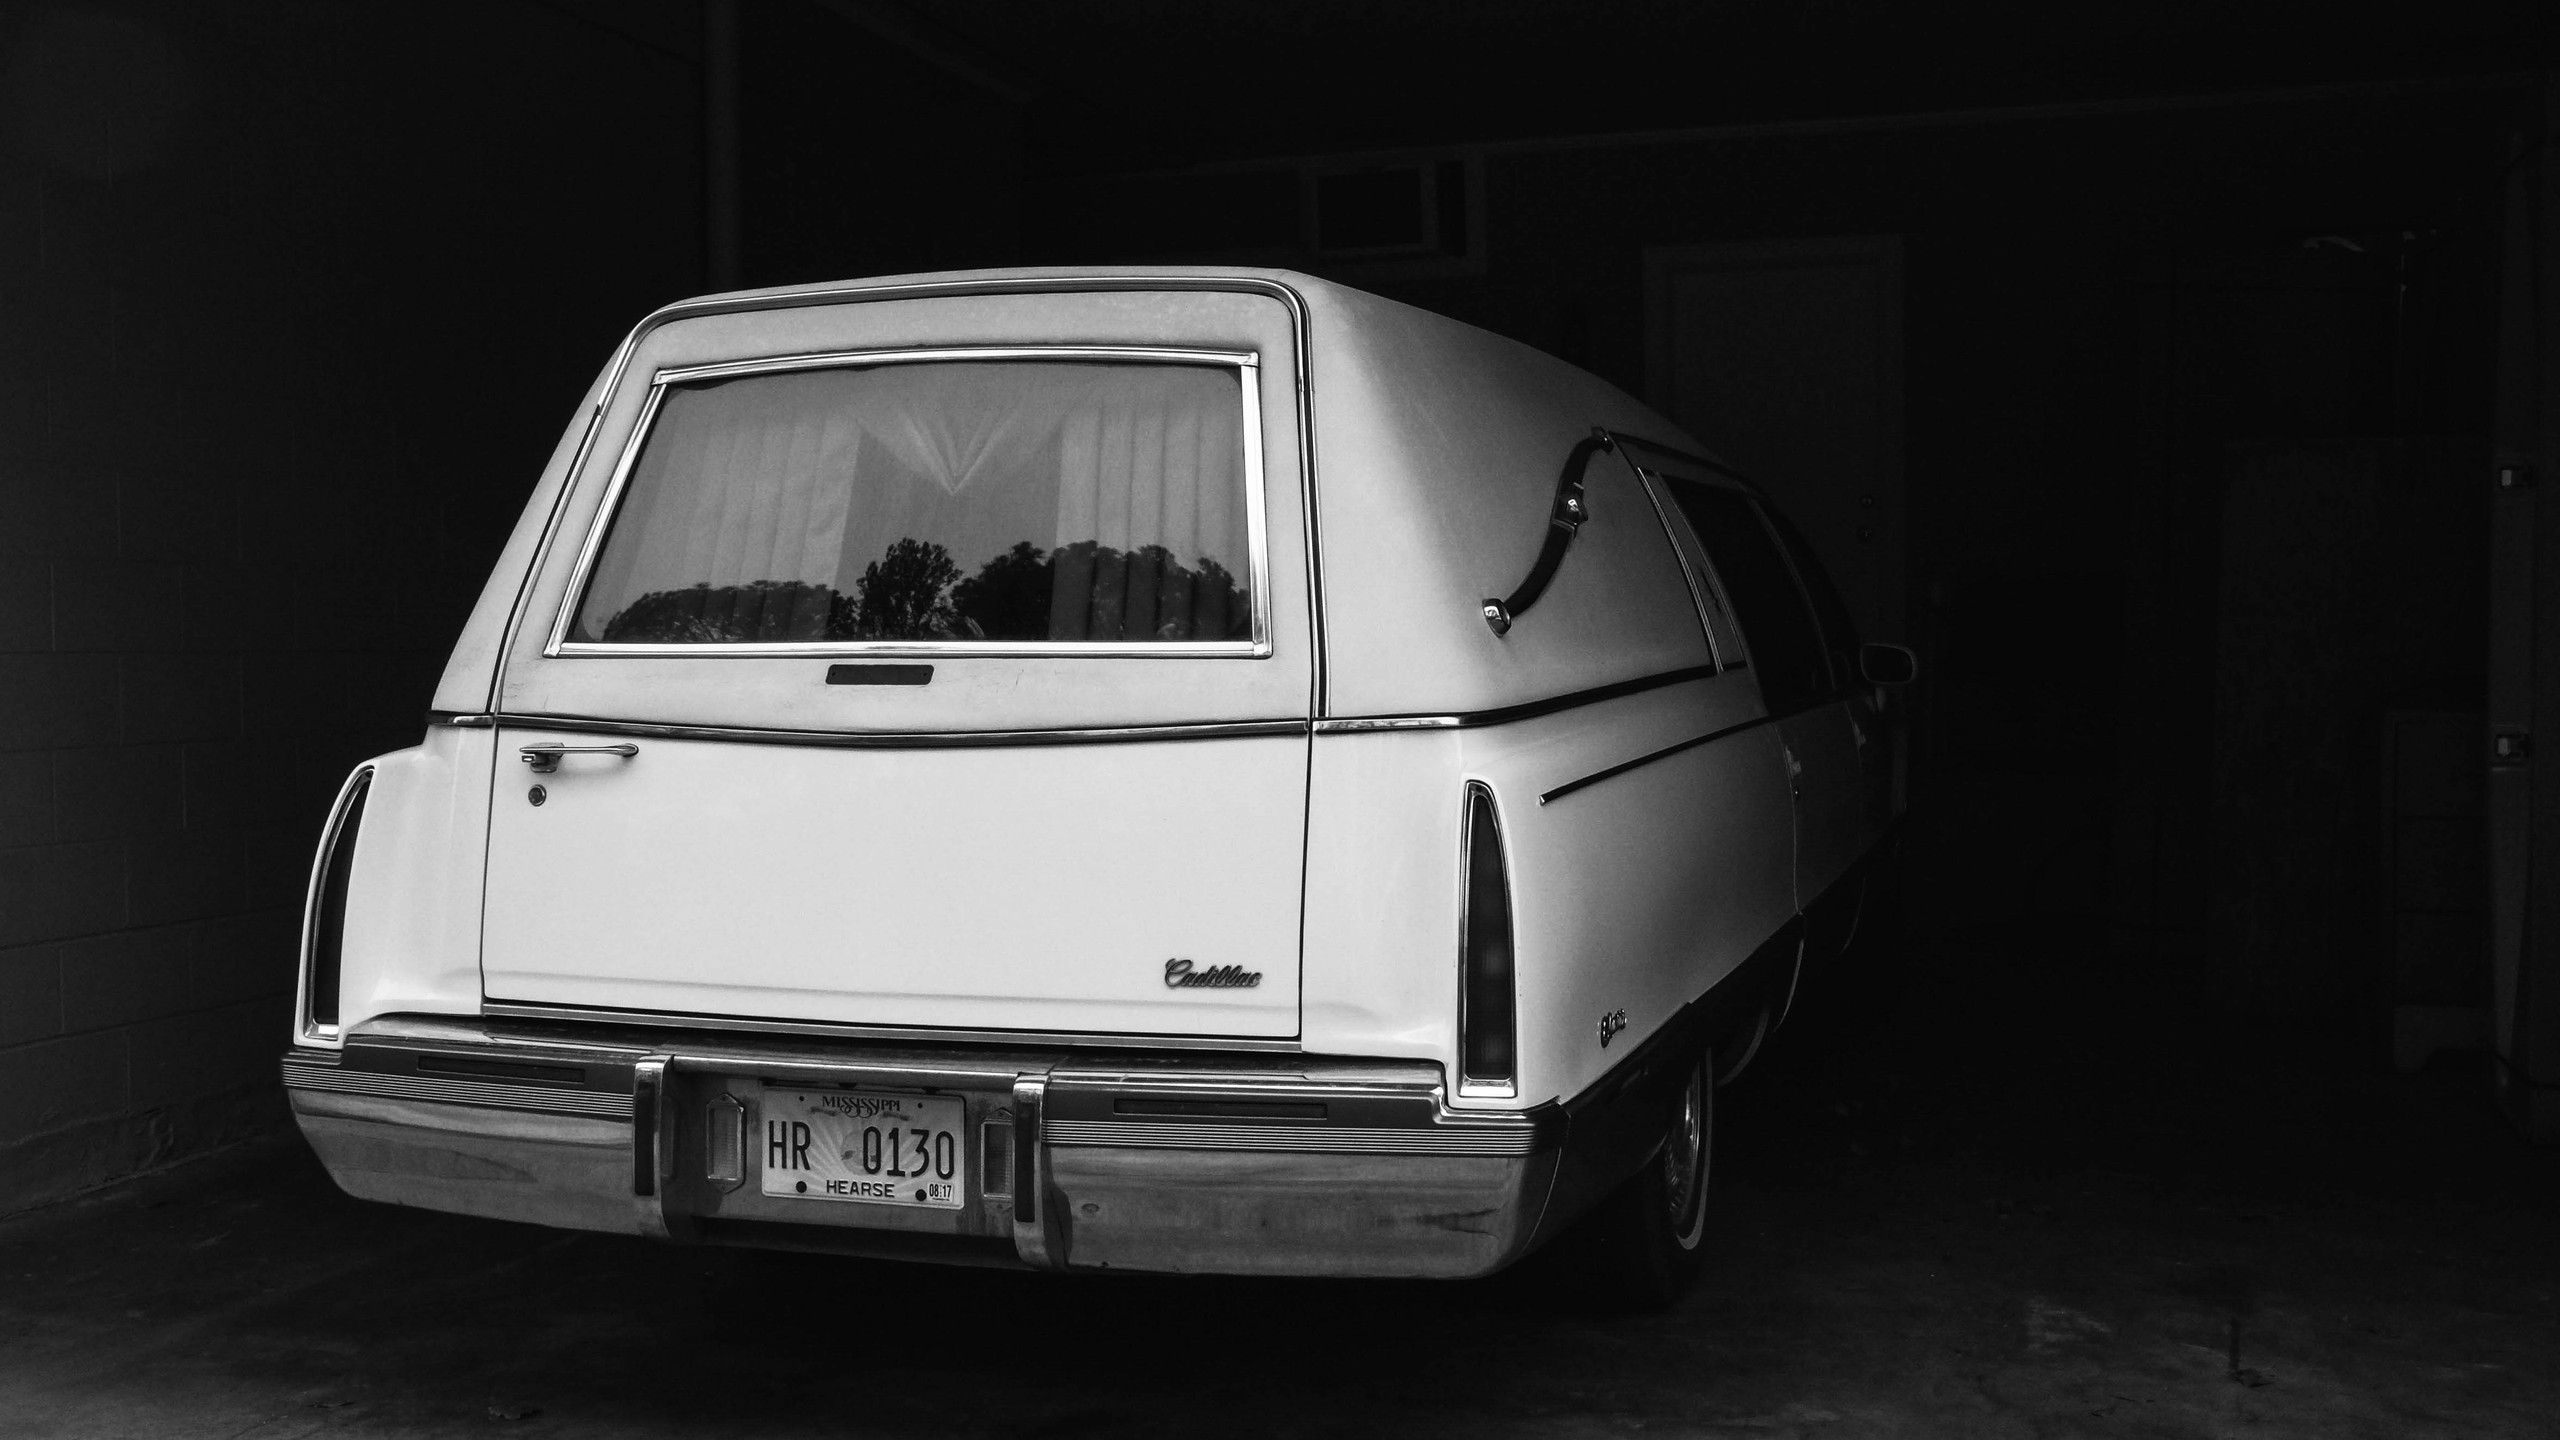 Jordan Funeral Home's hearse in the garage.